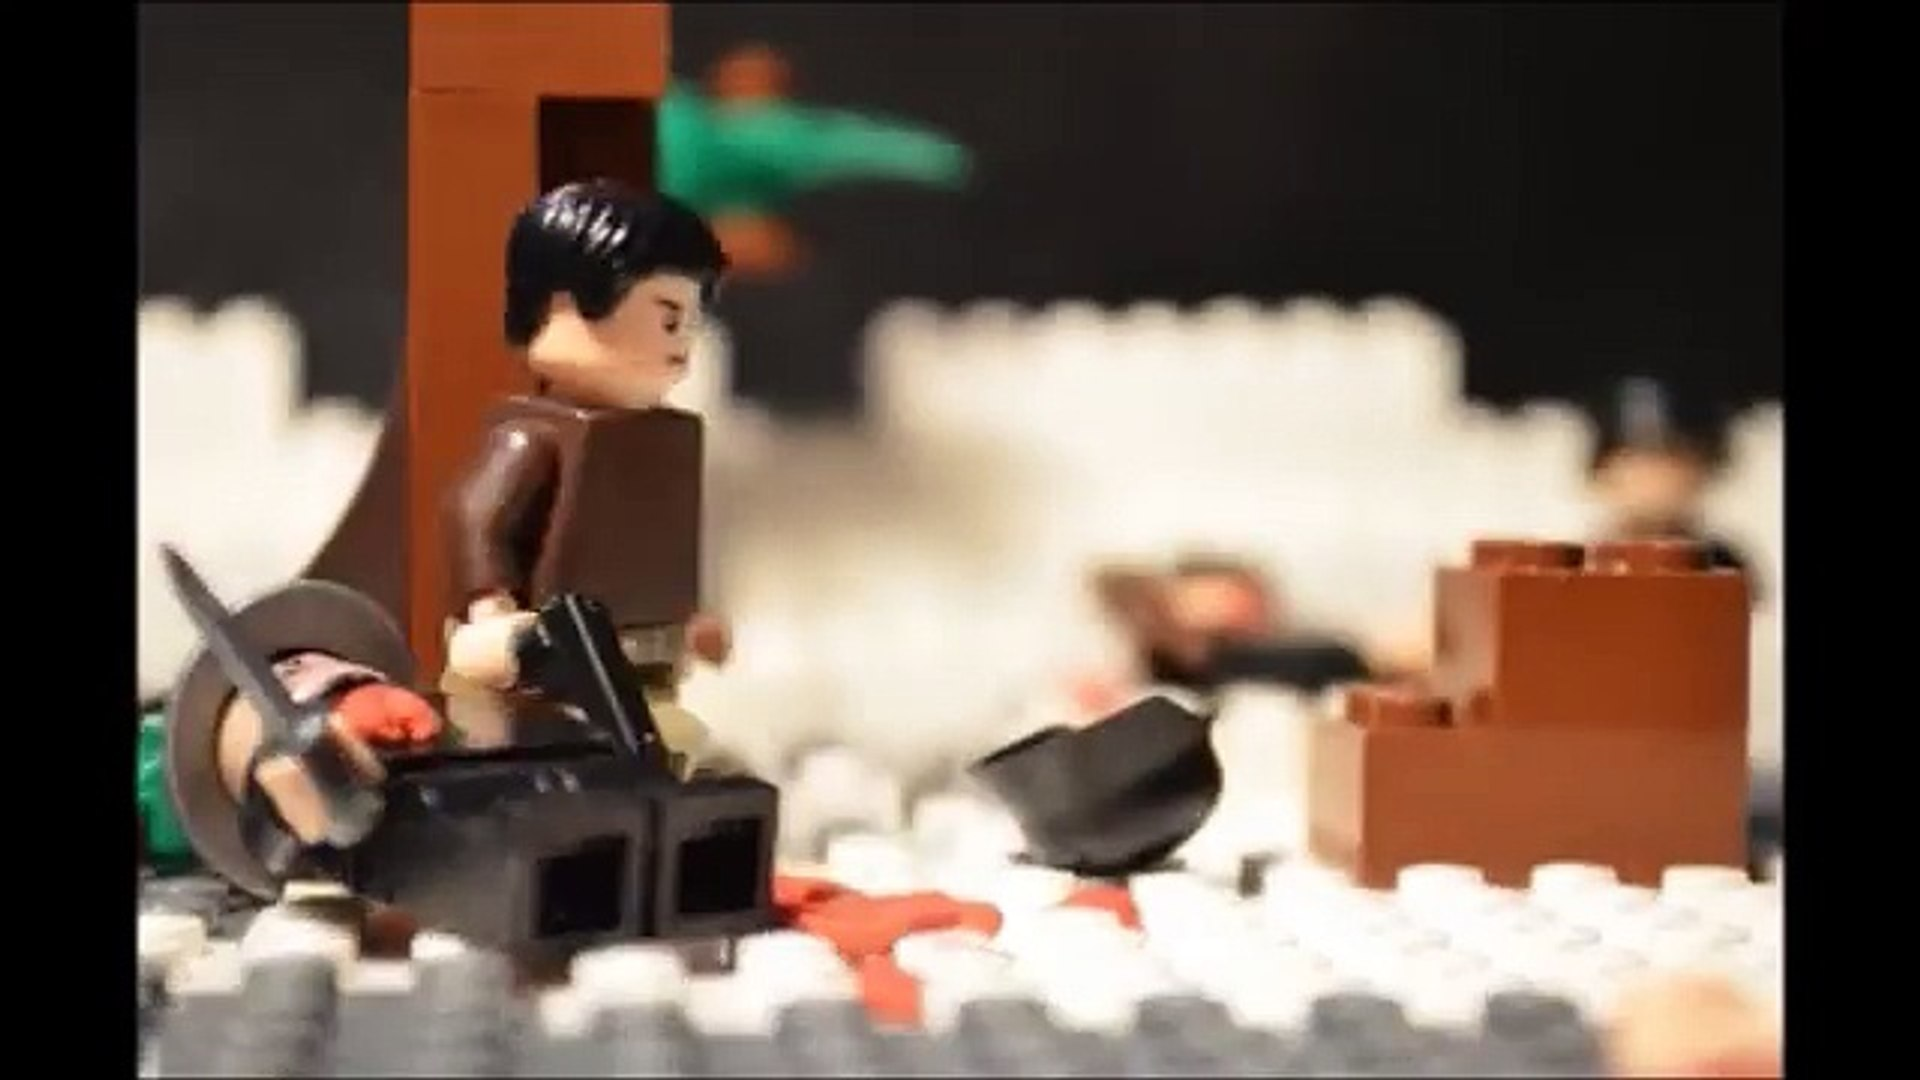 Lego WW1: BELLEAU WOOD | BRICKFILM